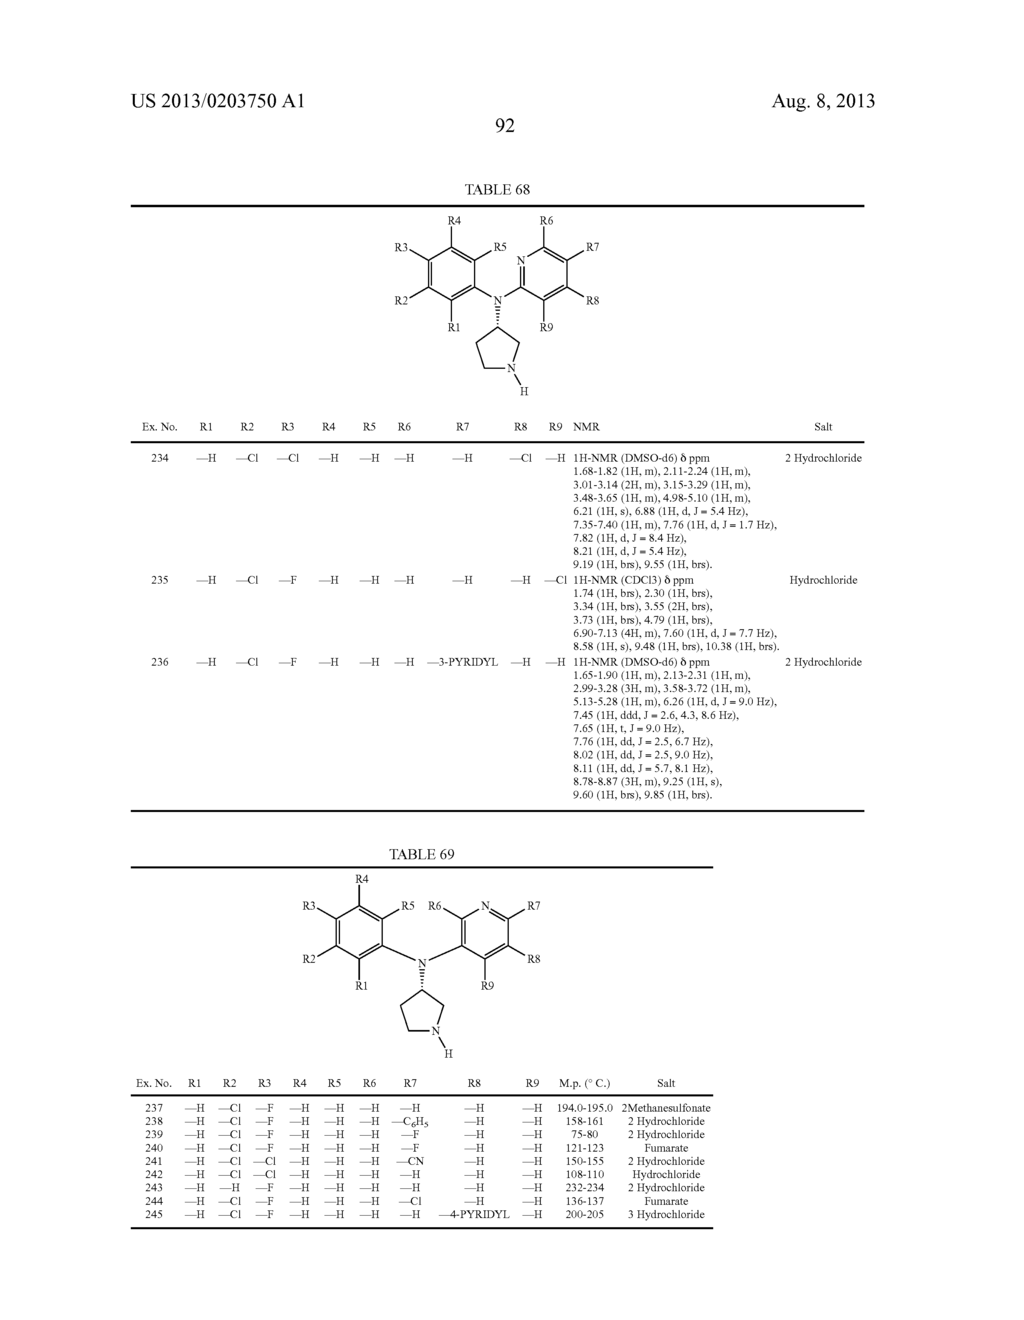 N,N-SUBSTITUTED 3-AMINOPYRROLIDINE COMPOUNDS USEFUL AS MONOAMINES REUPTAKE     INHIBITORS - diagram, schematic, and image 93